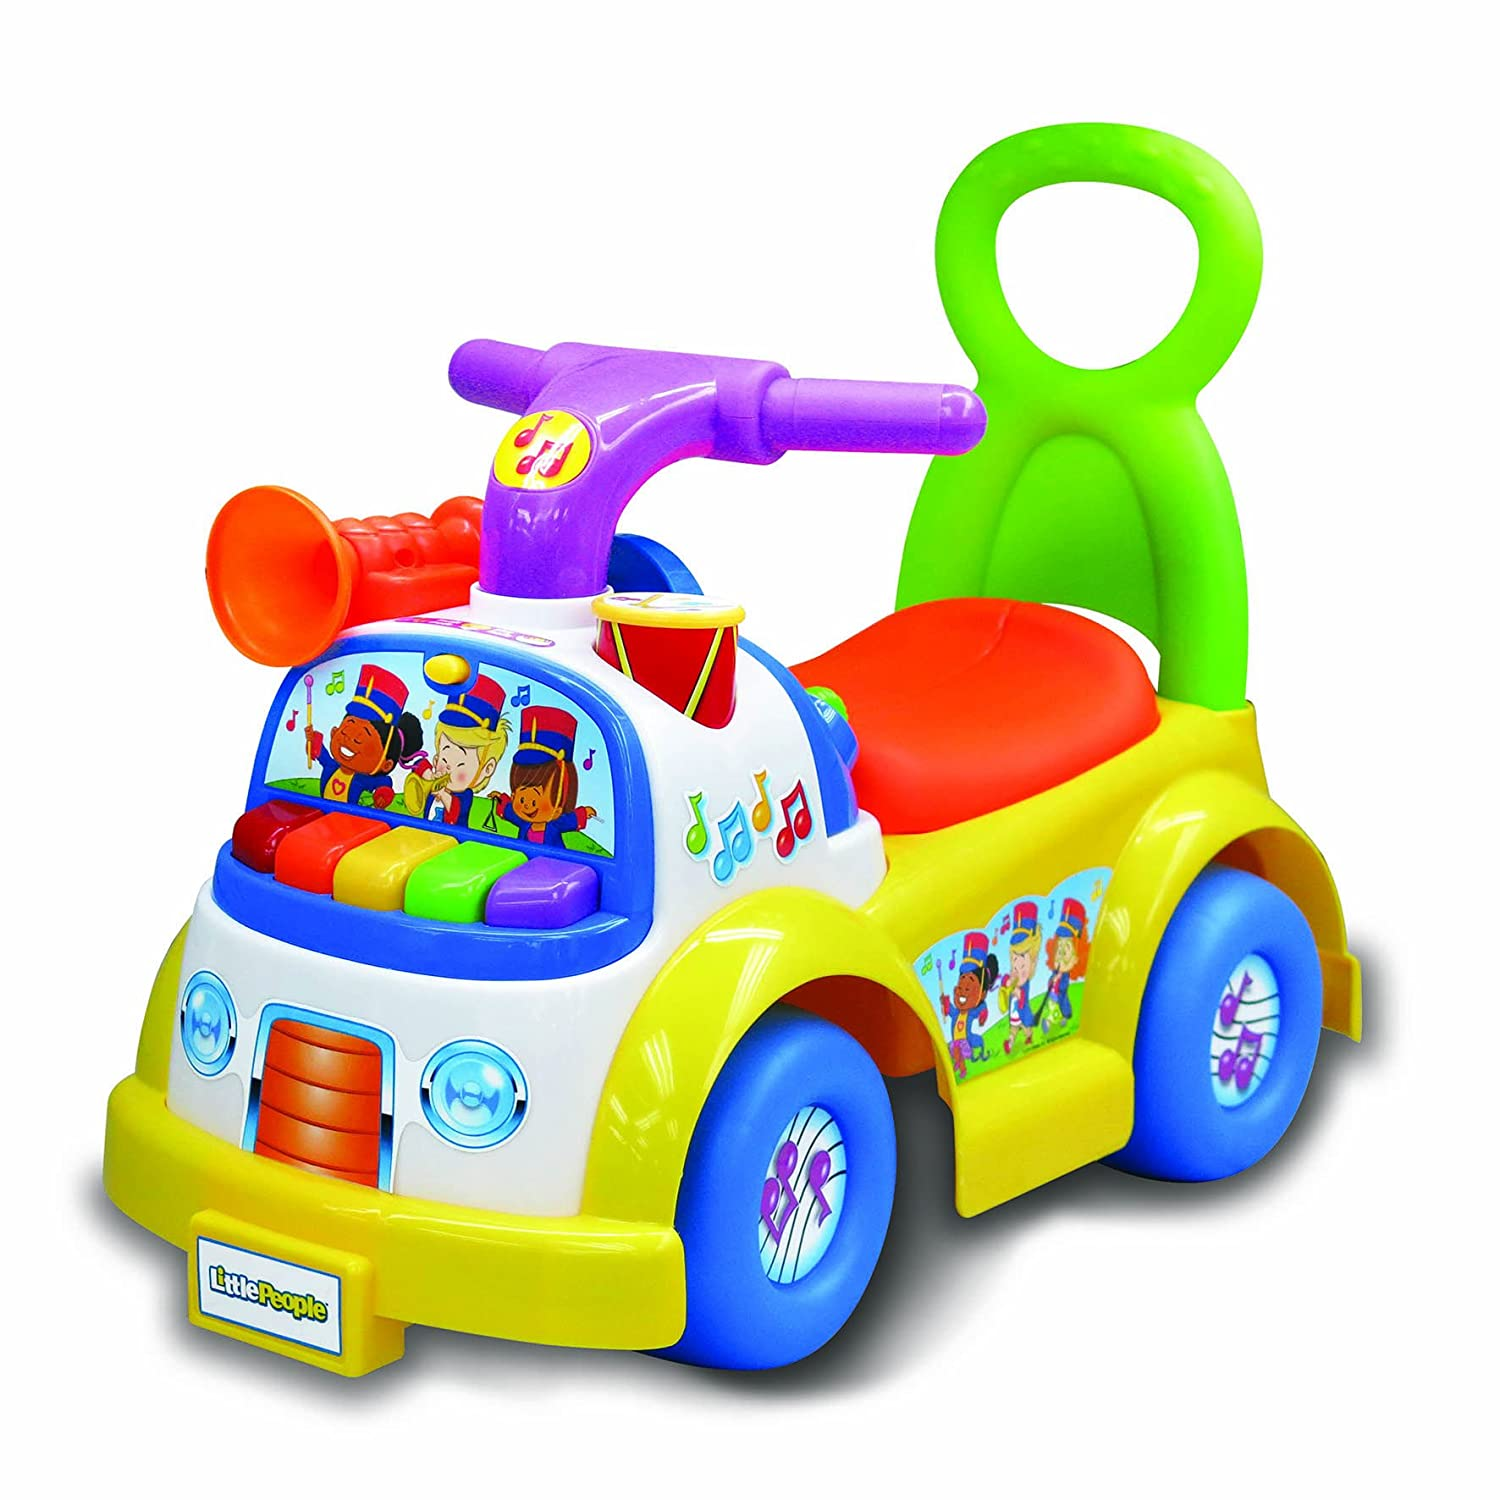 Unique Toddler Toys For 2 Year Old Car : Cool toys for year old boys birthday christmas